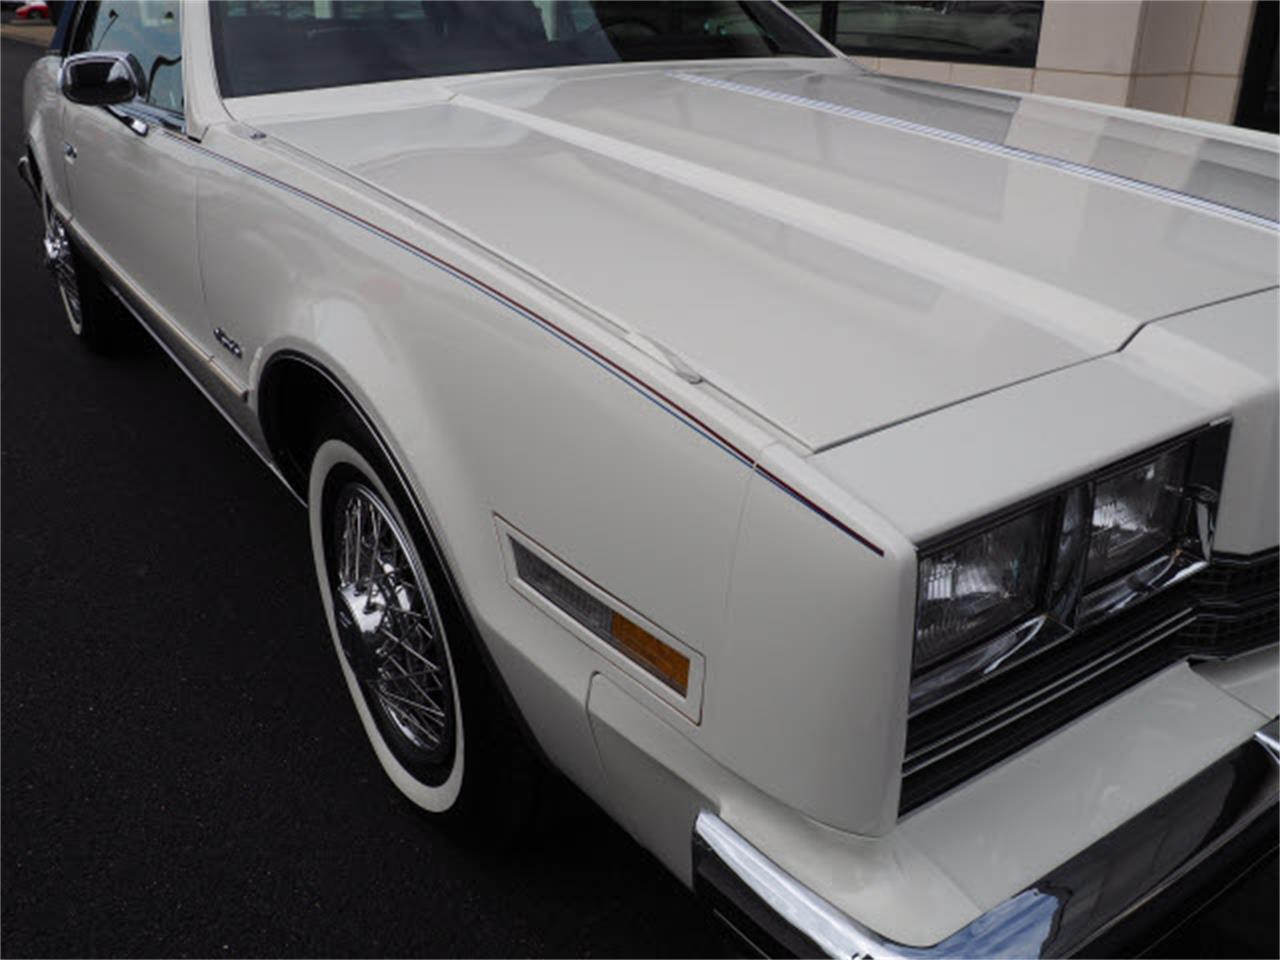 Large Picture of '85 Toronado - $14,999.00 Offered by Nelson Automotive, Ltd. - LUQO